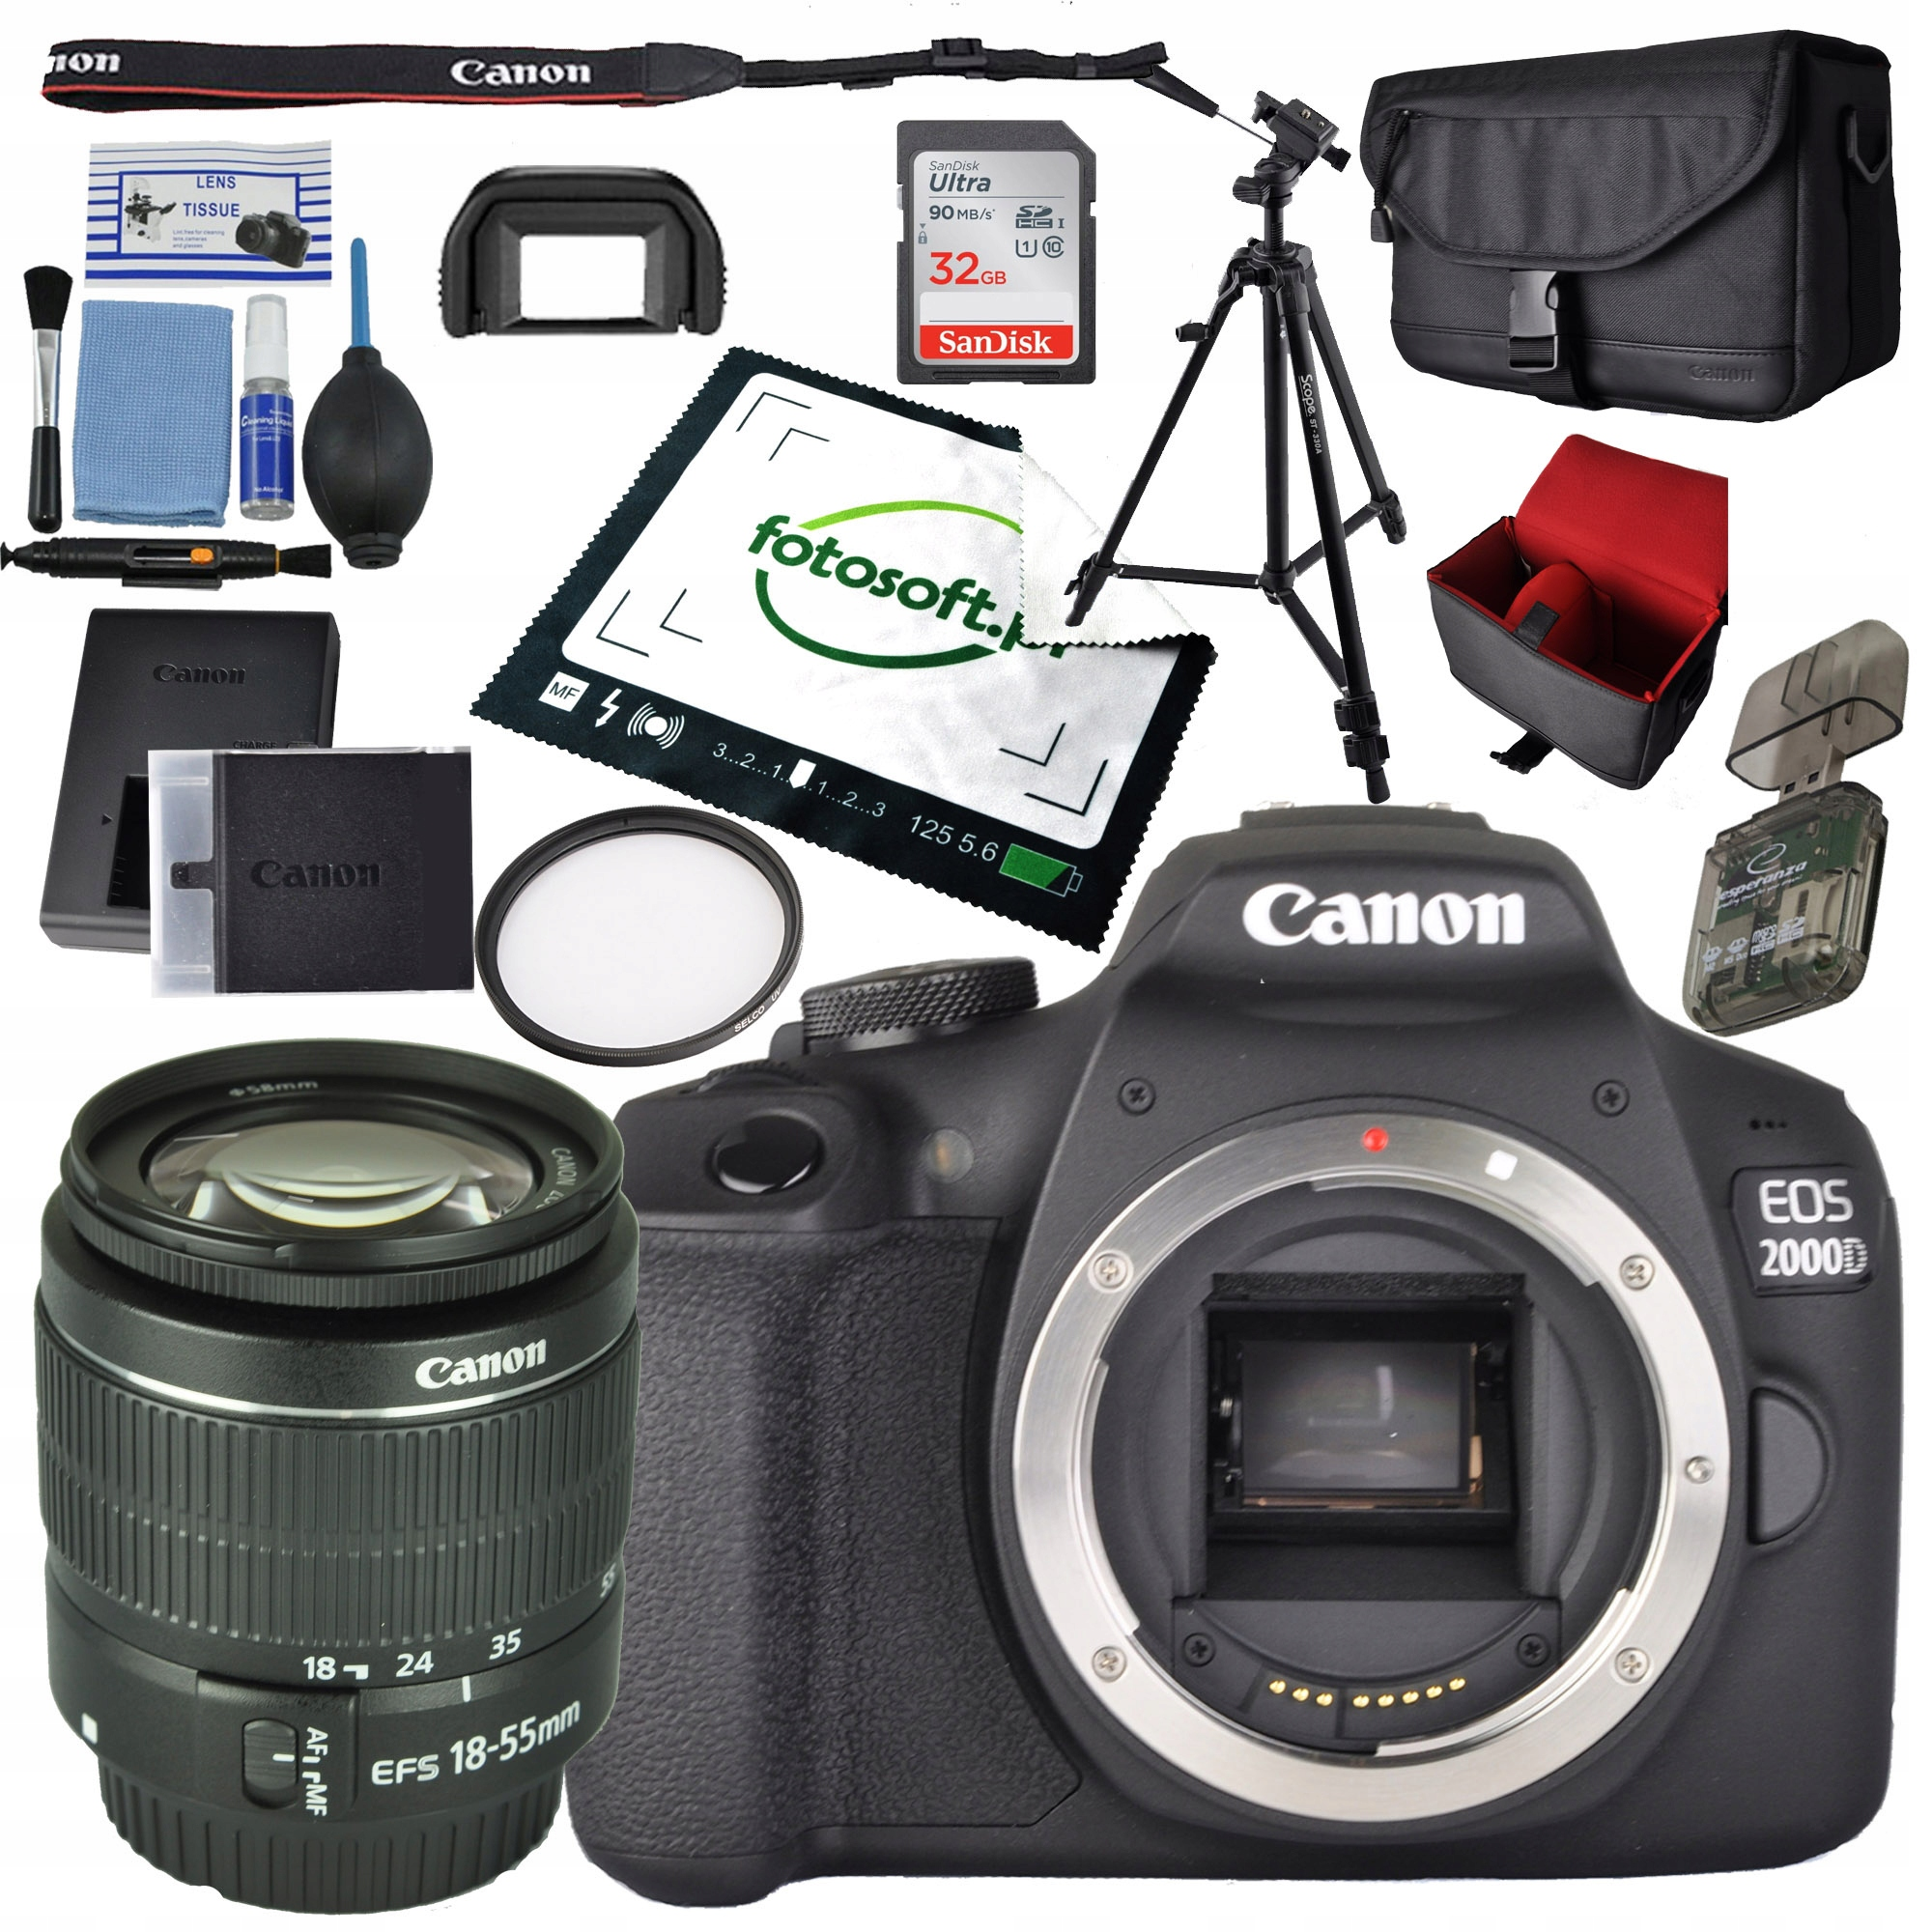 CANON EOS 2000D + 18-55 DC III WIPE SET 2XL